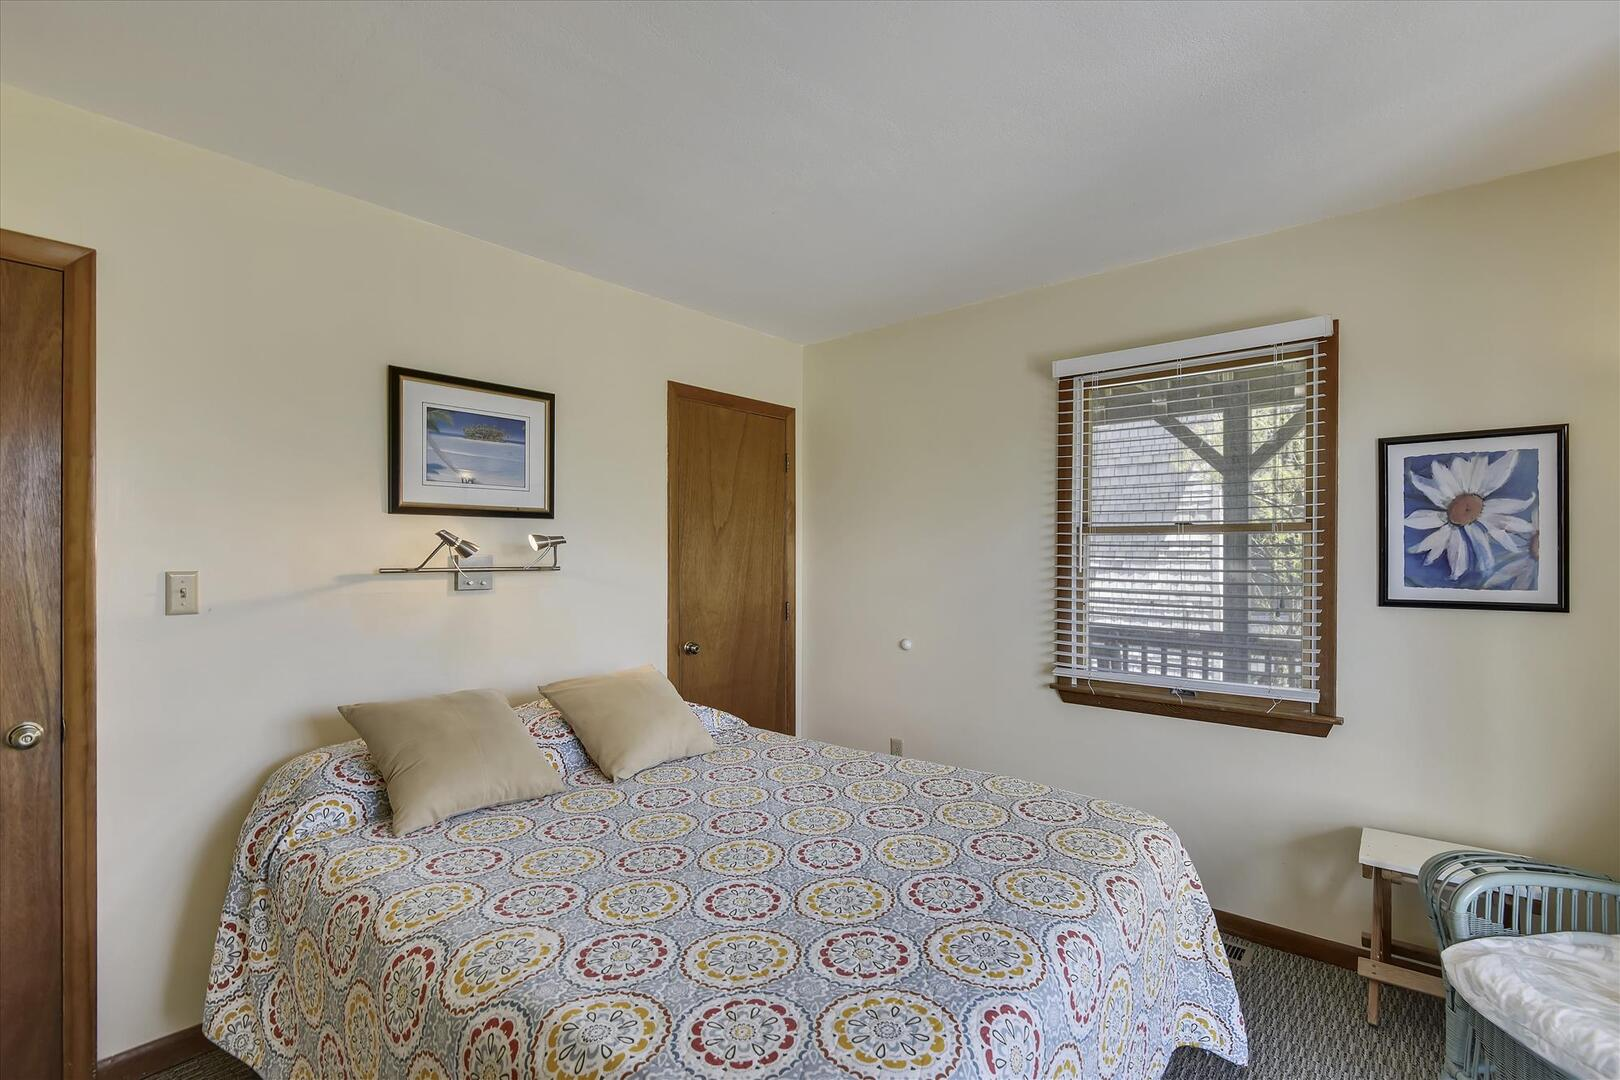 Middle,Bedroom,